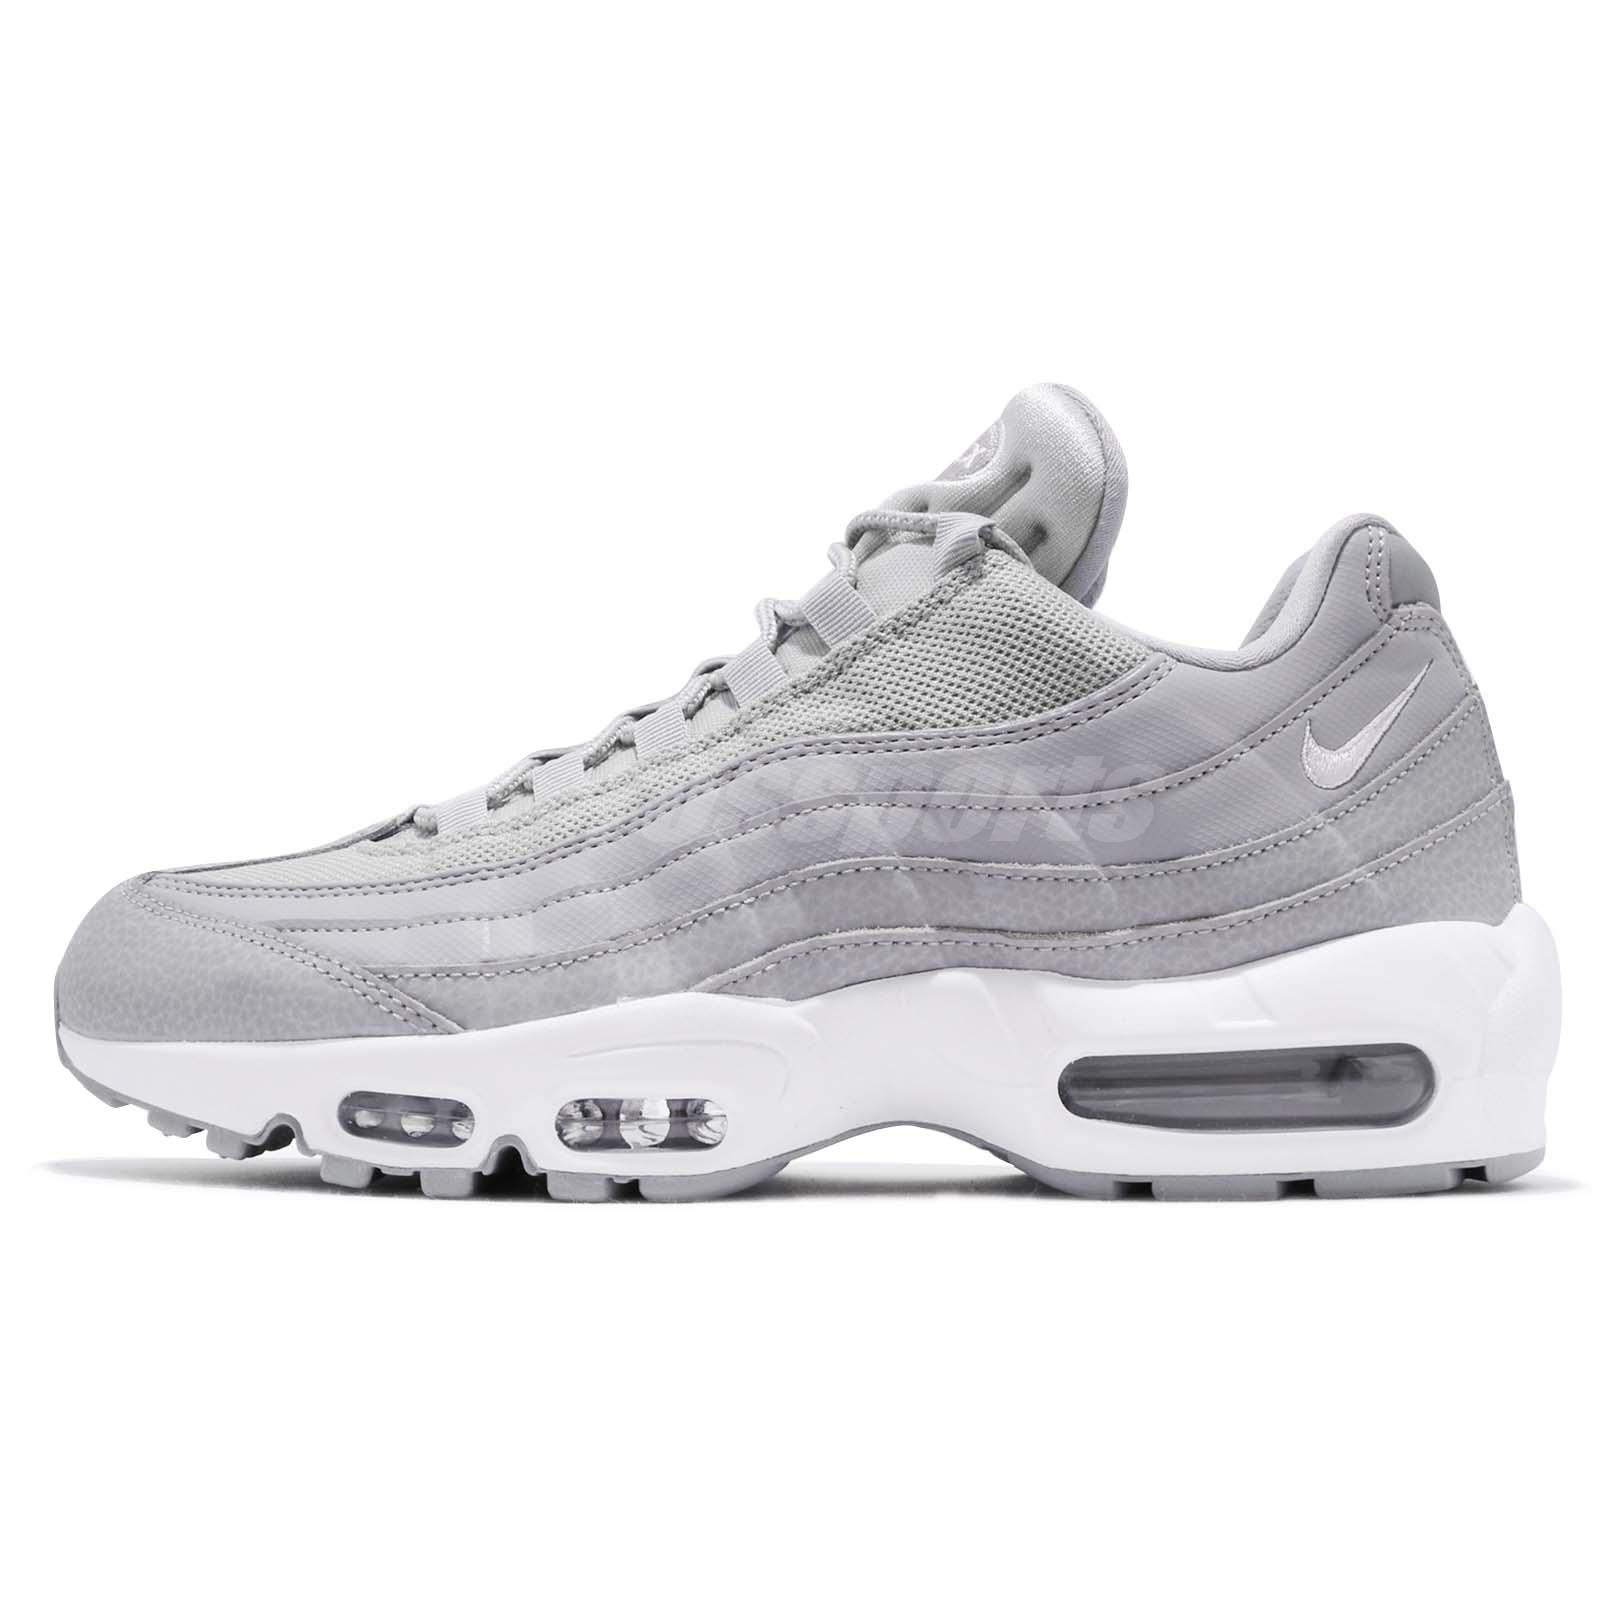 factory authentic 8a68c 7f0d2 Nike Air Max 95 Essential Grey White Men Running Shoes Sneakers 749766-037